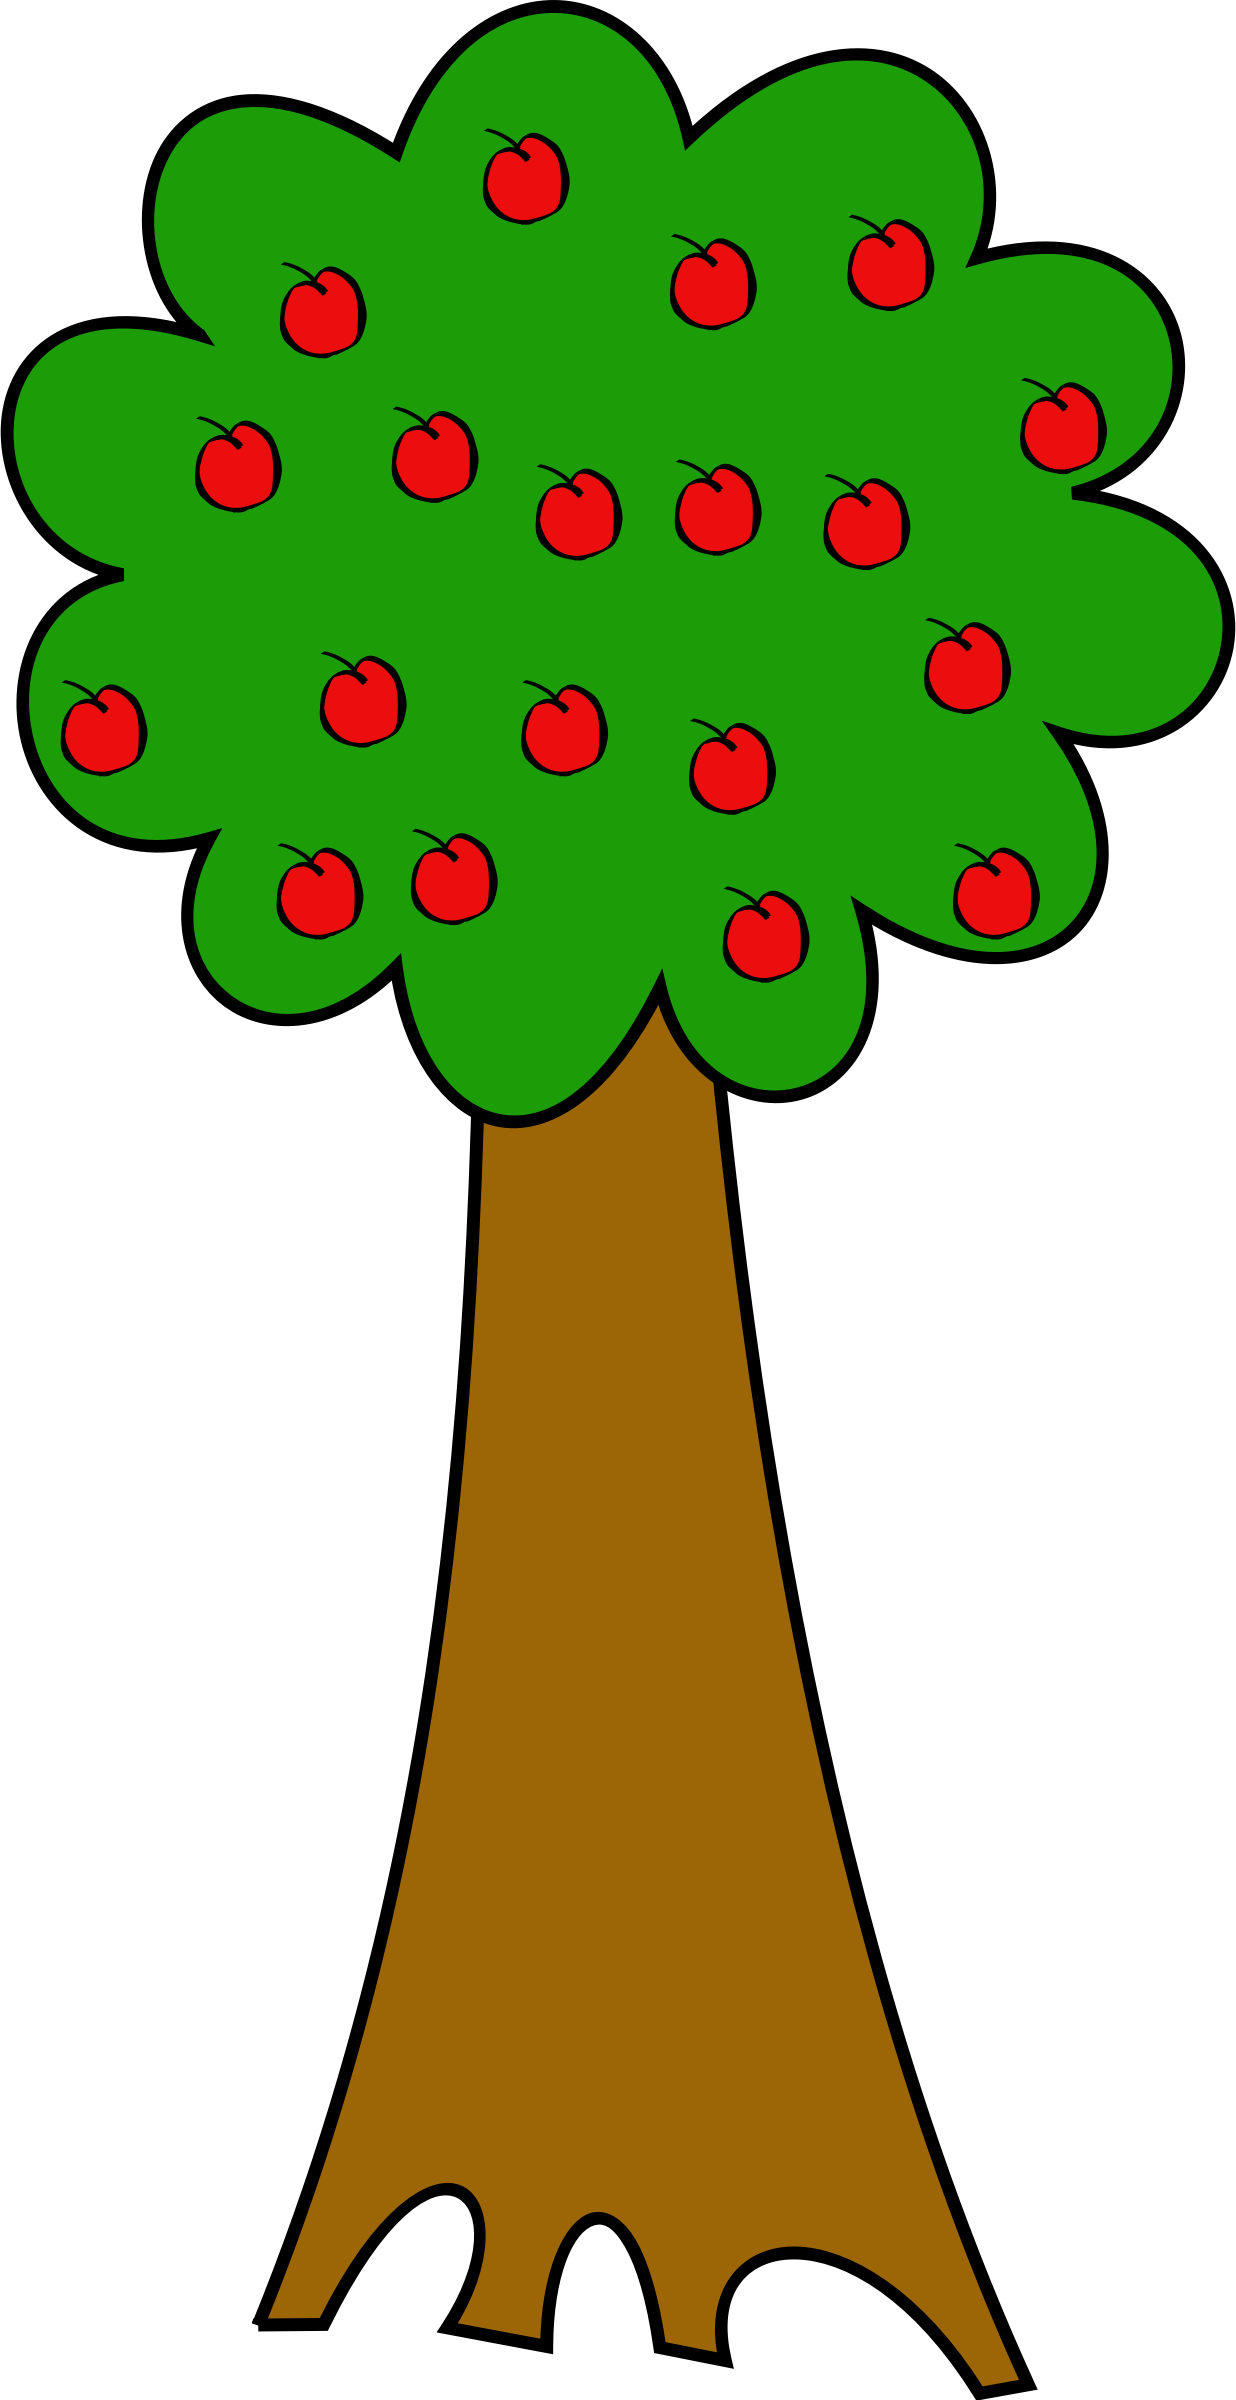 Apple tree clipart images png free download Clipart - apple tree png free download